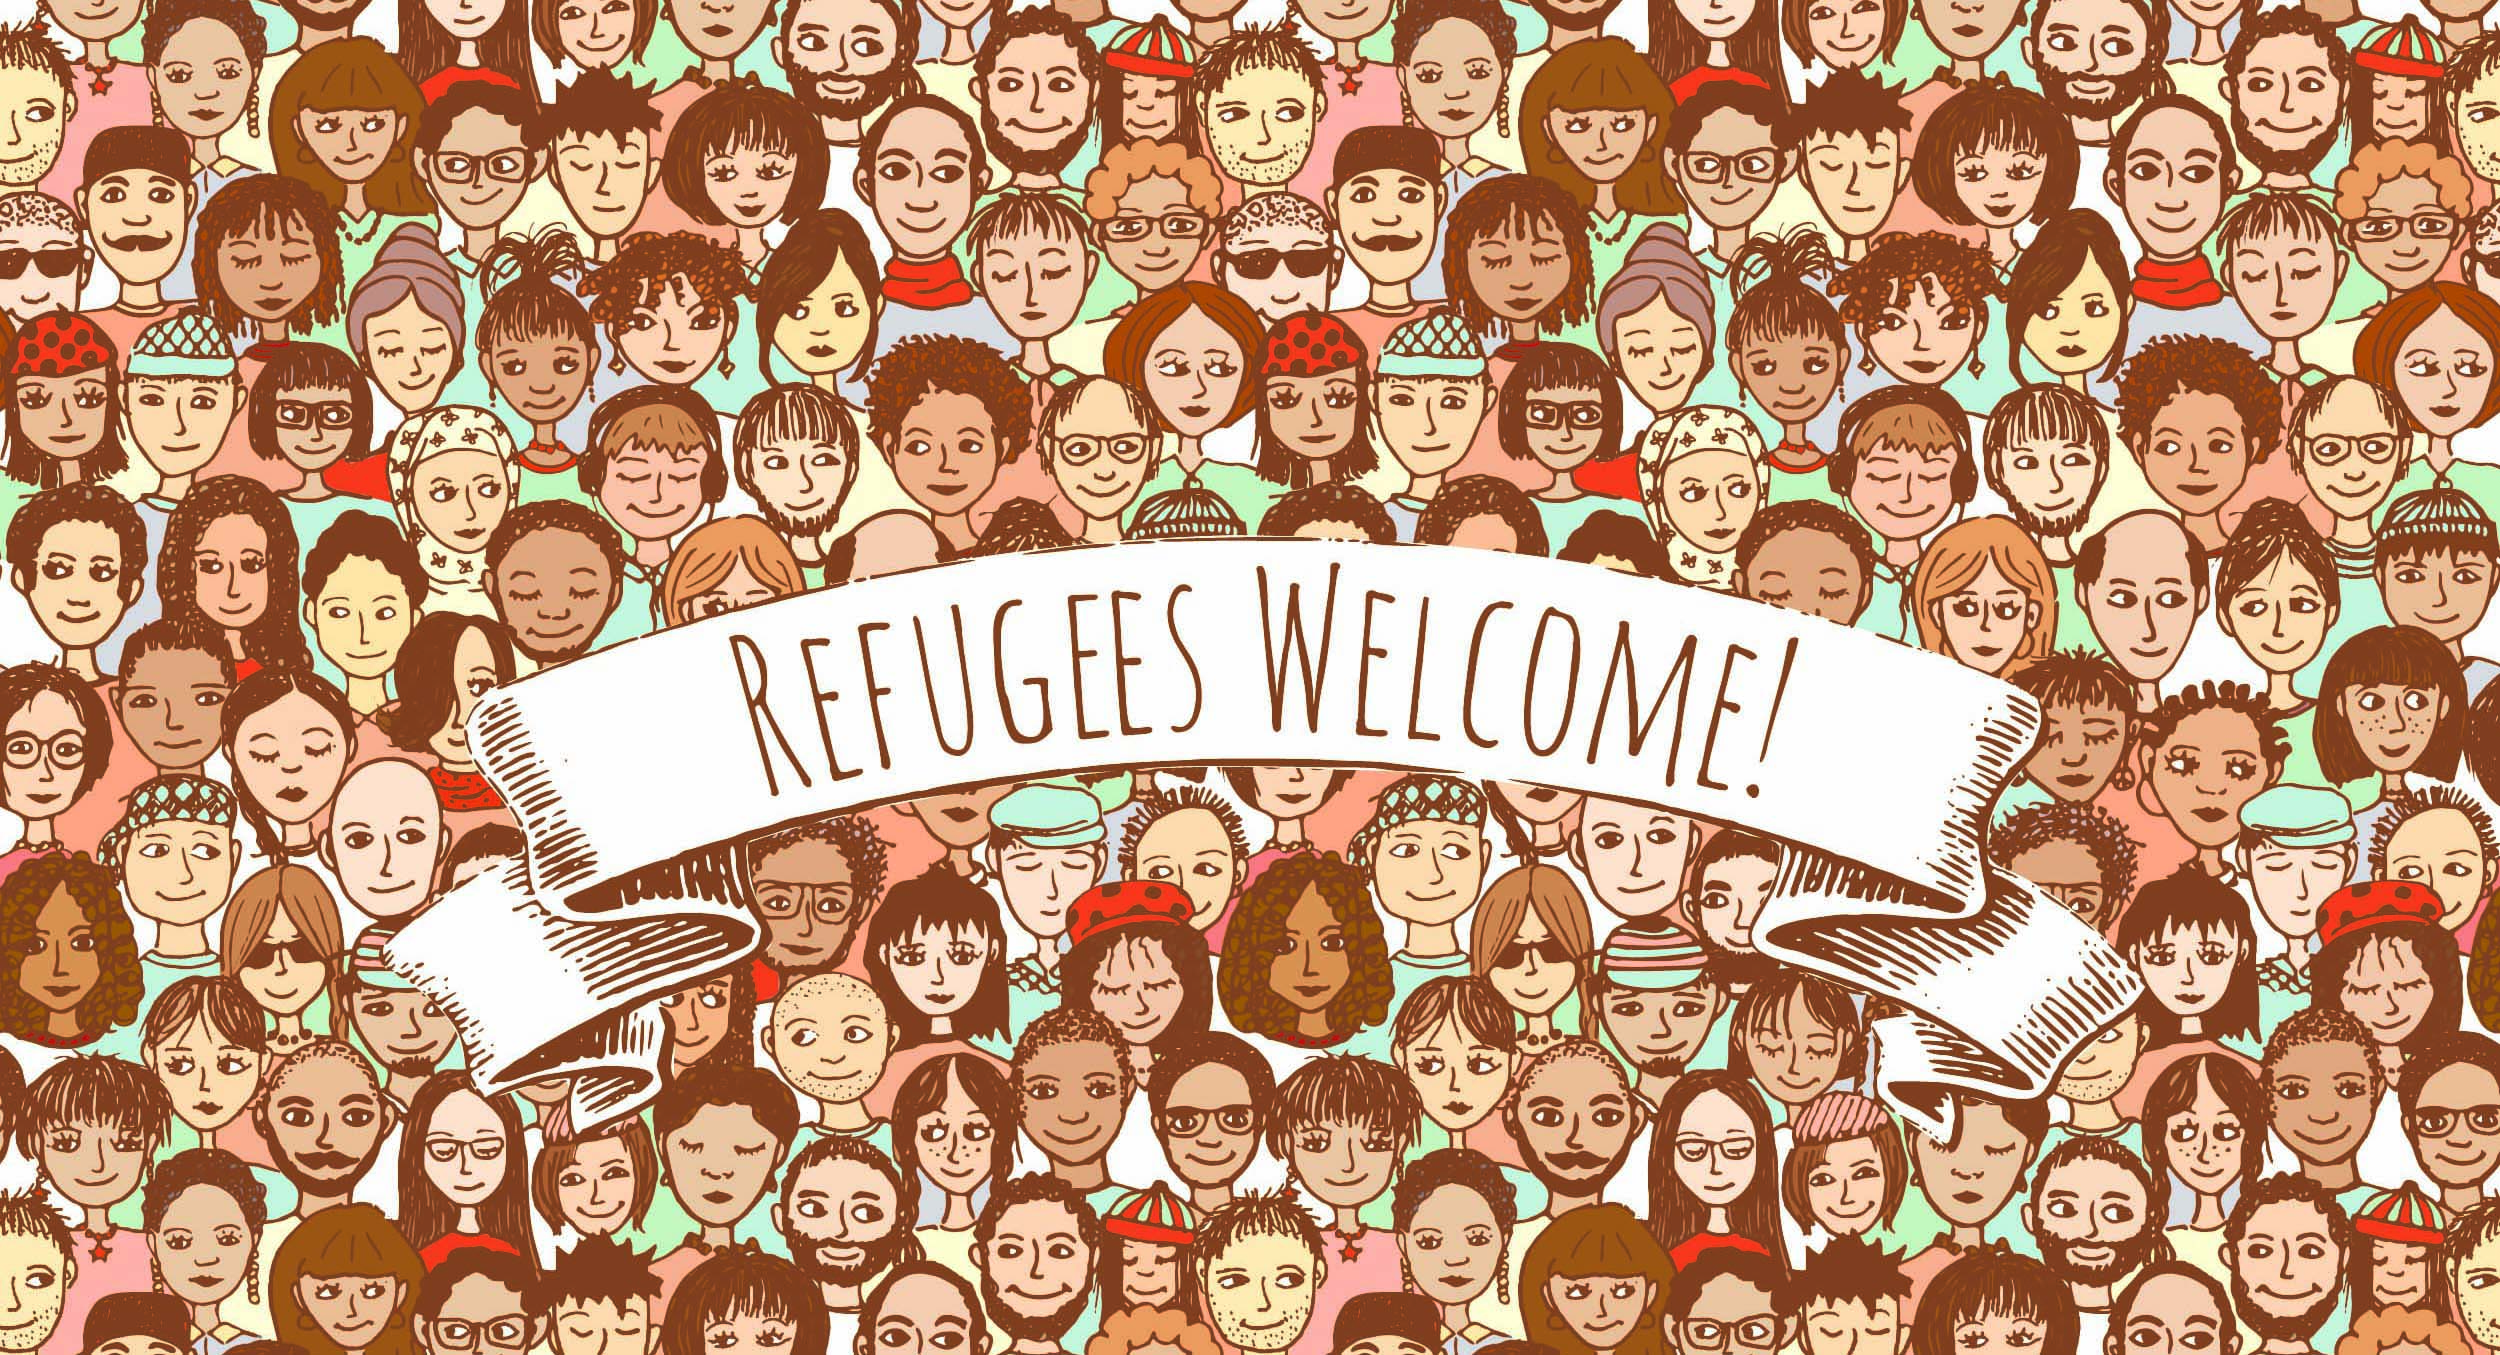 Welcome Refugees-Cropped